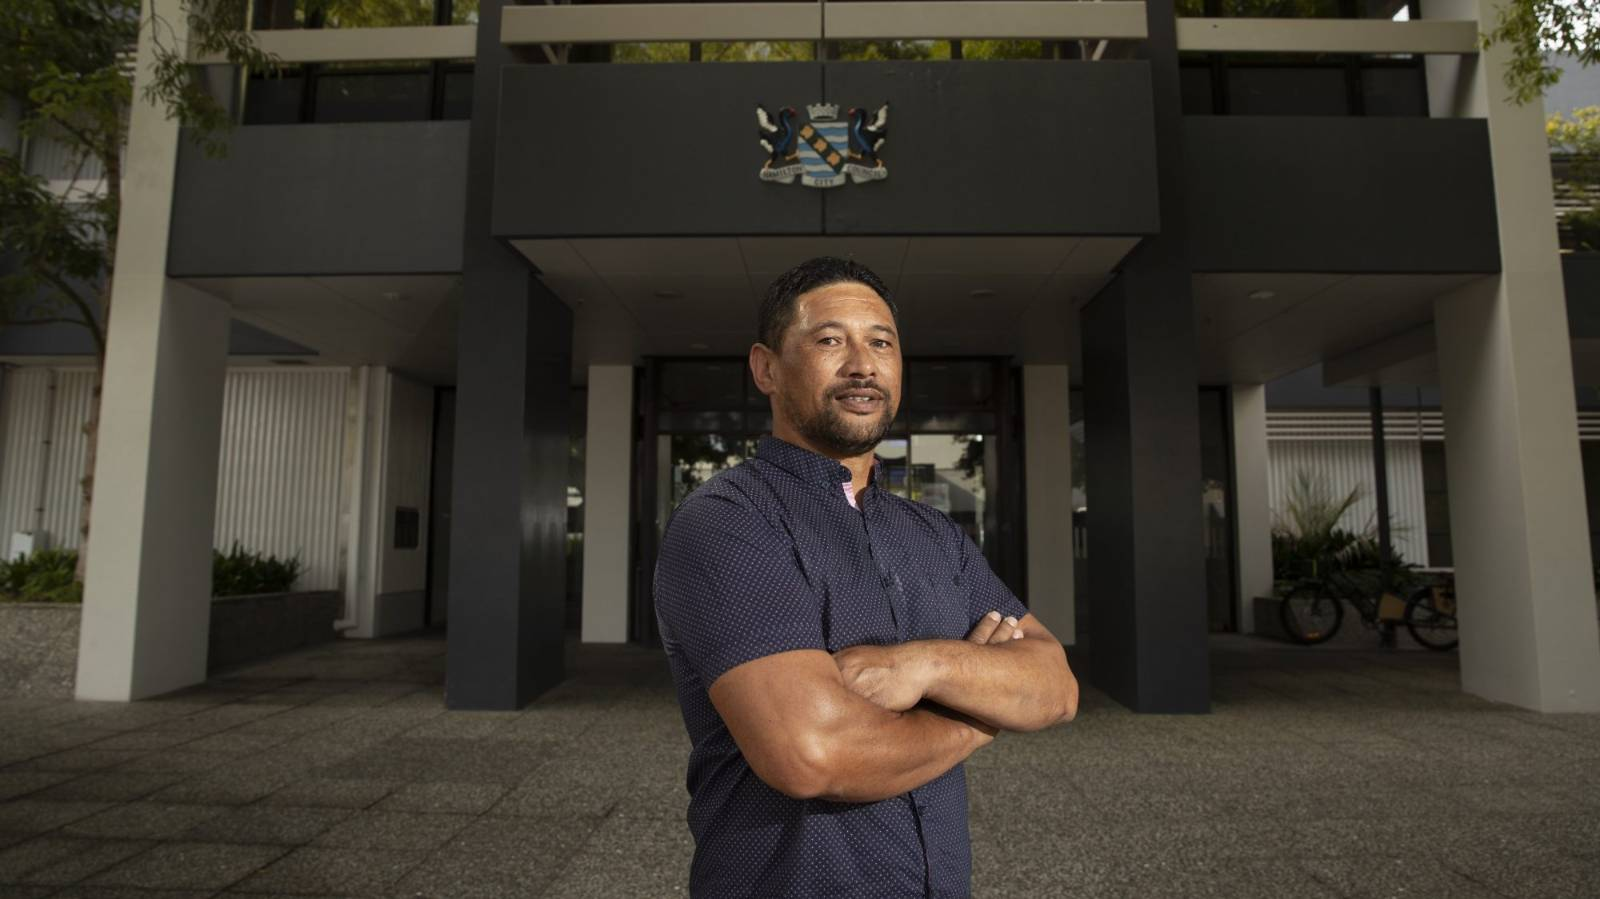 The man bringing council and iwi together with talk and careful listening